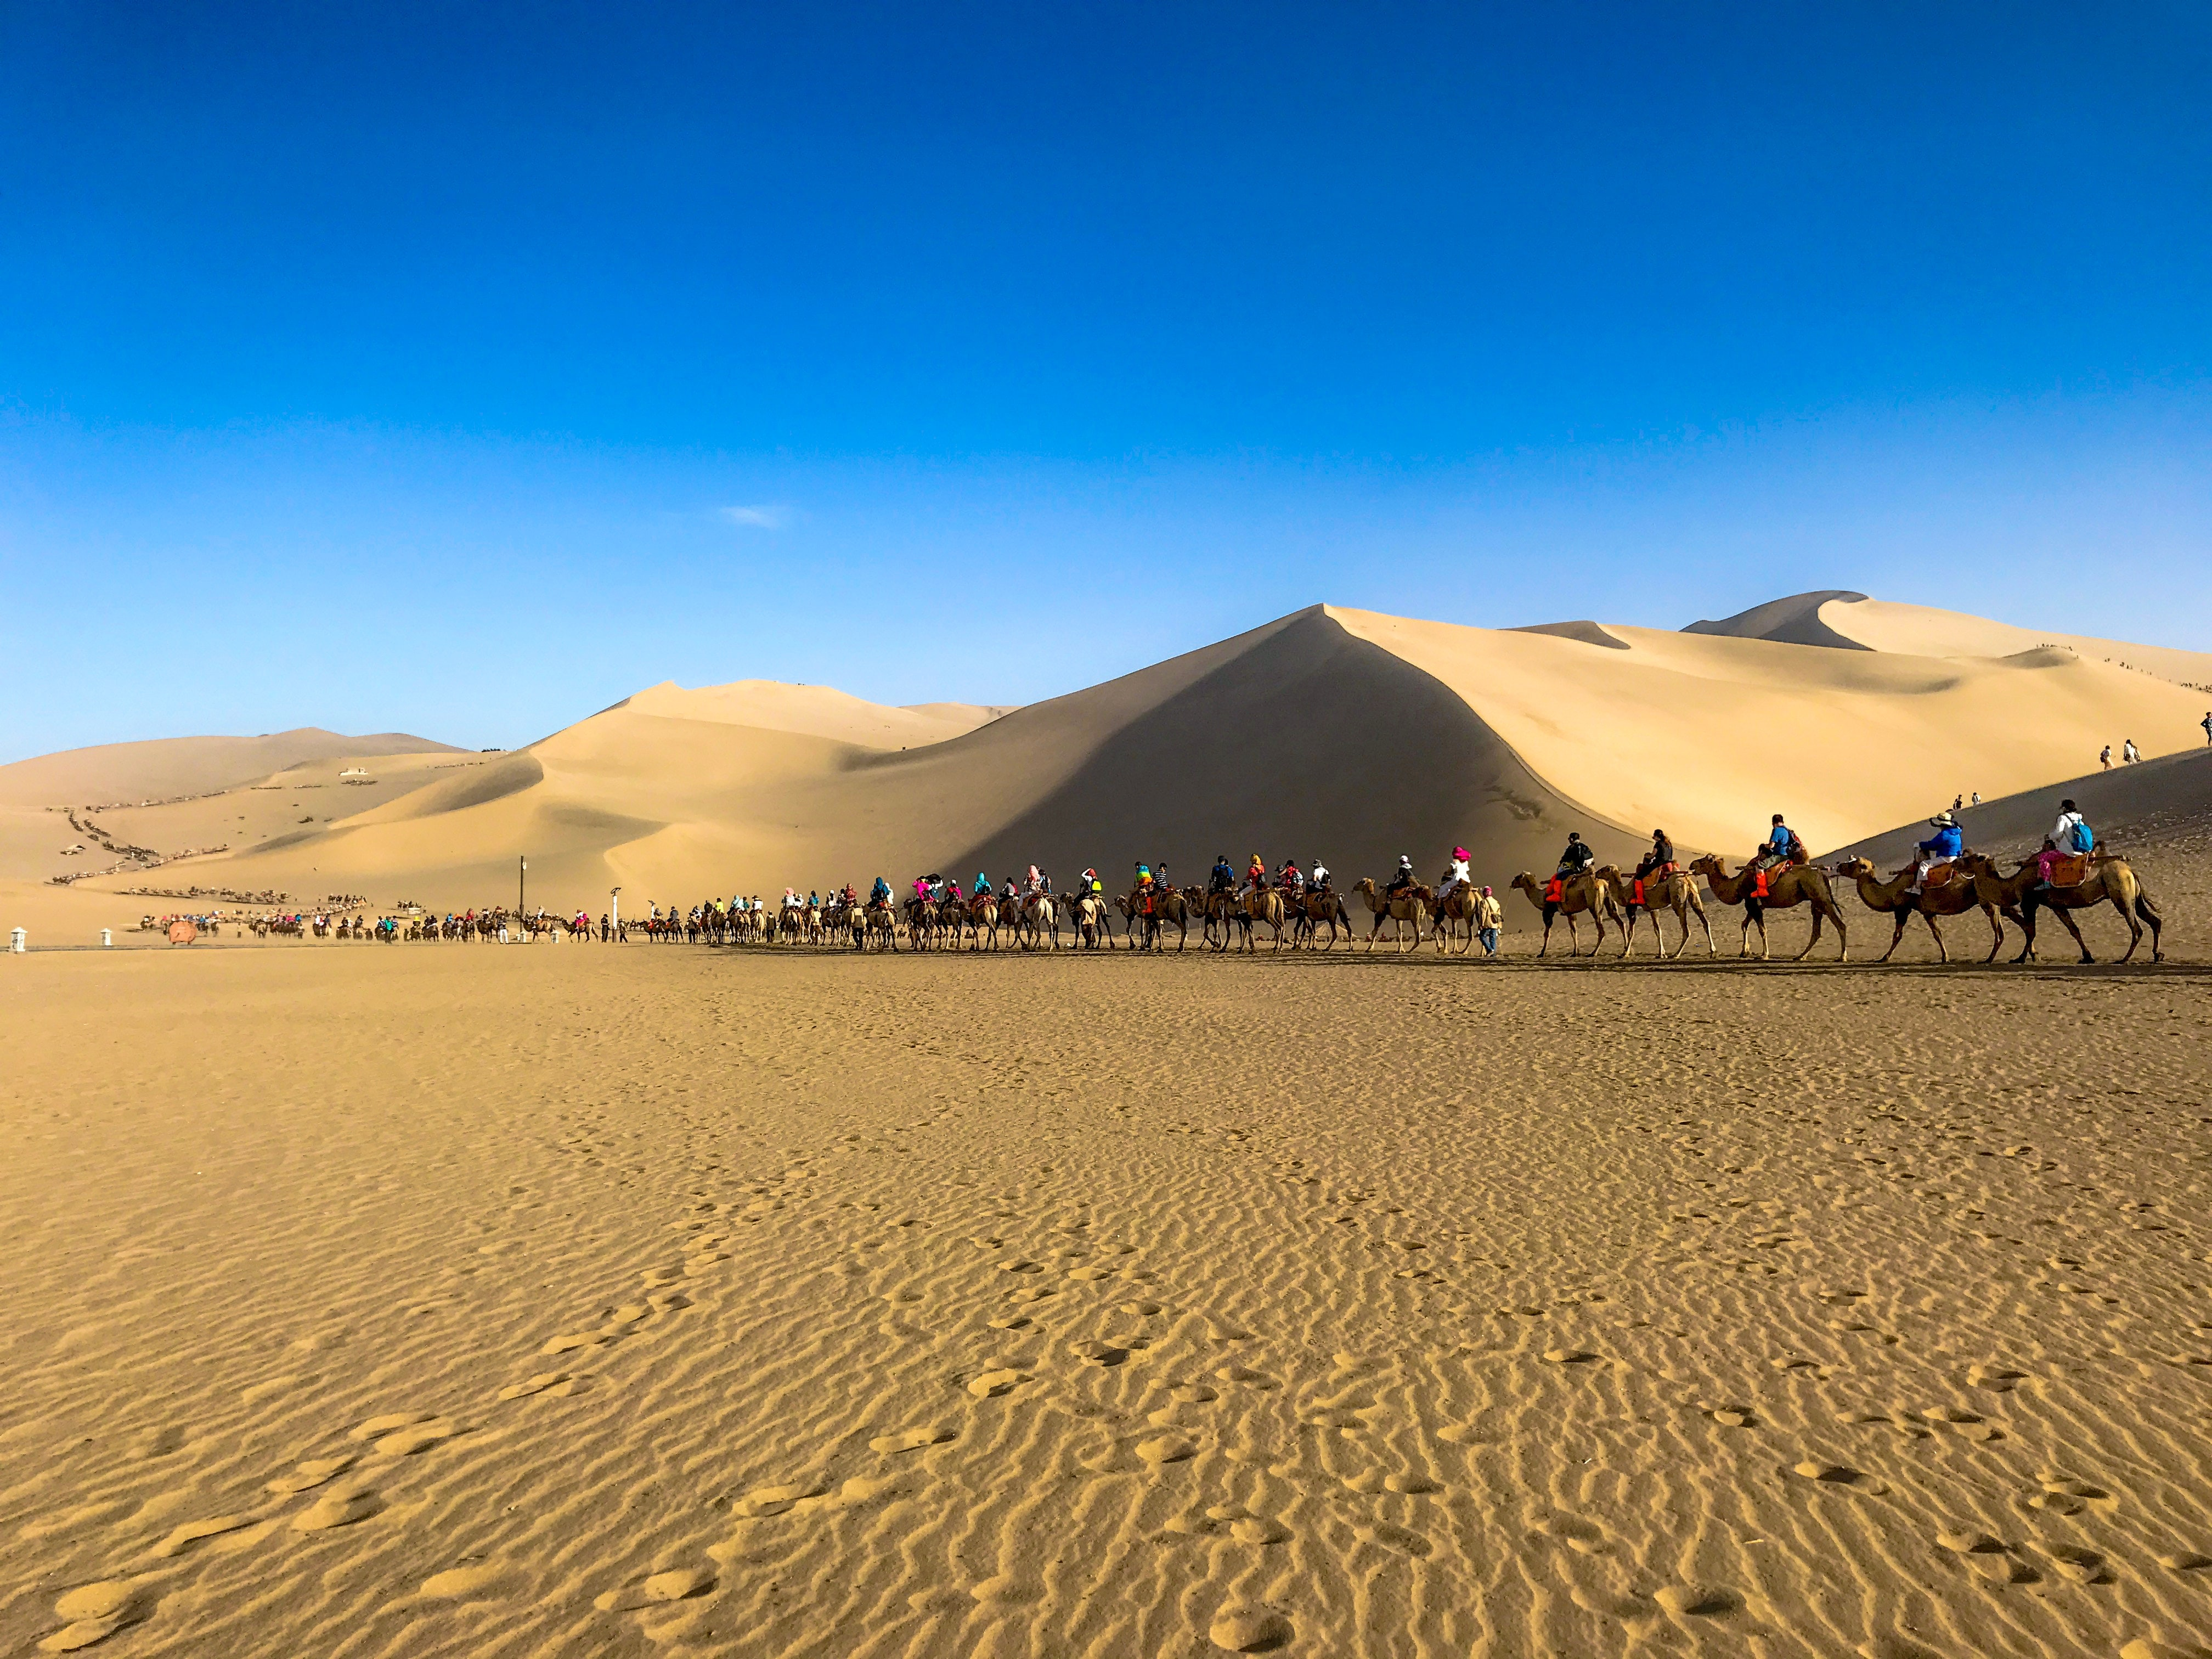 time lapse photography of people riding camels